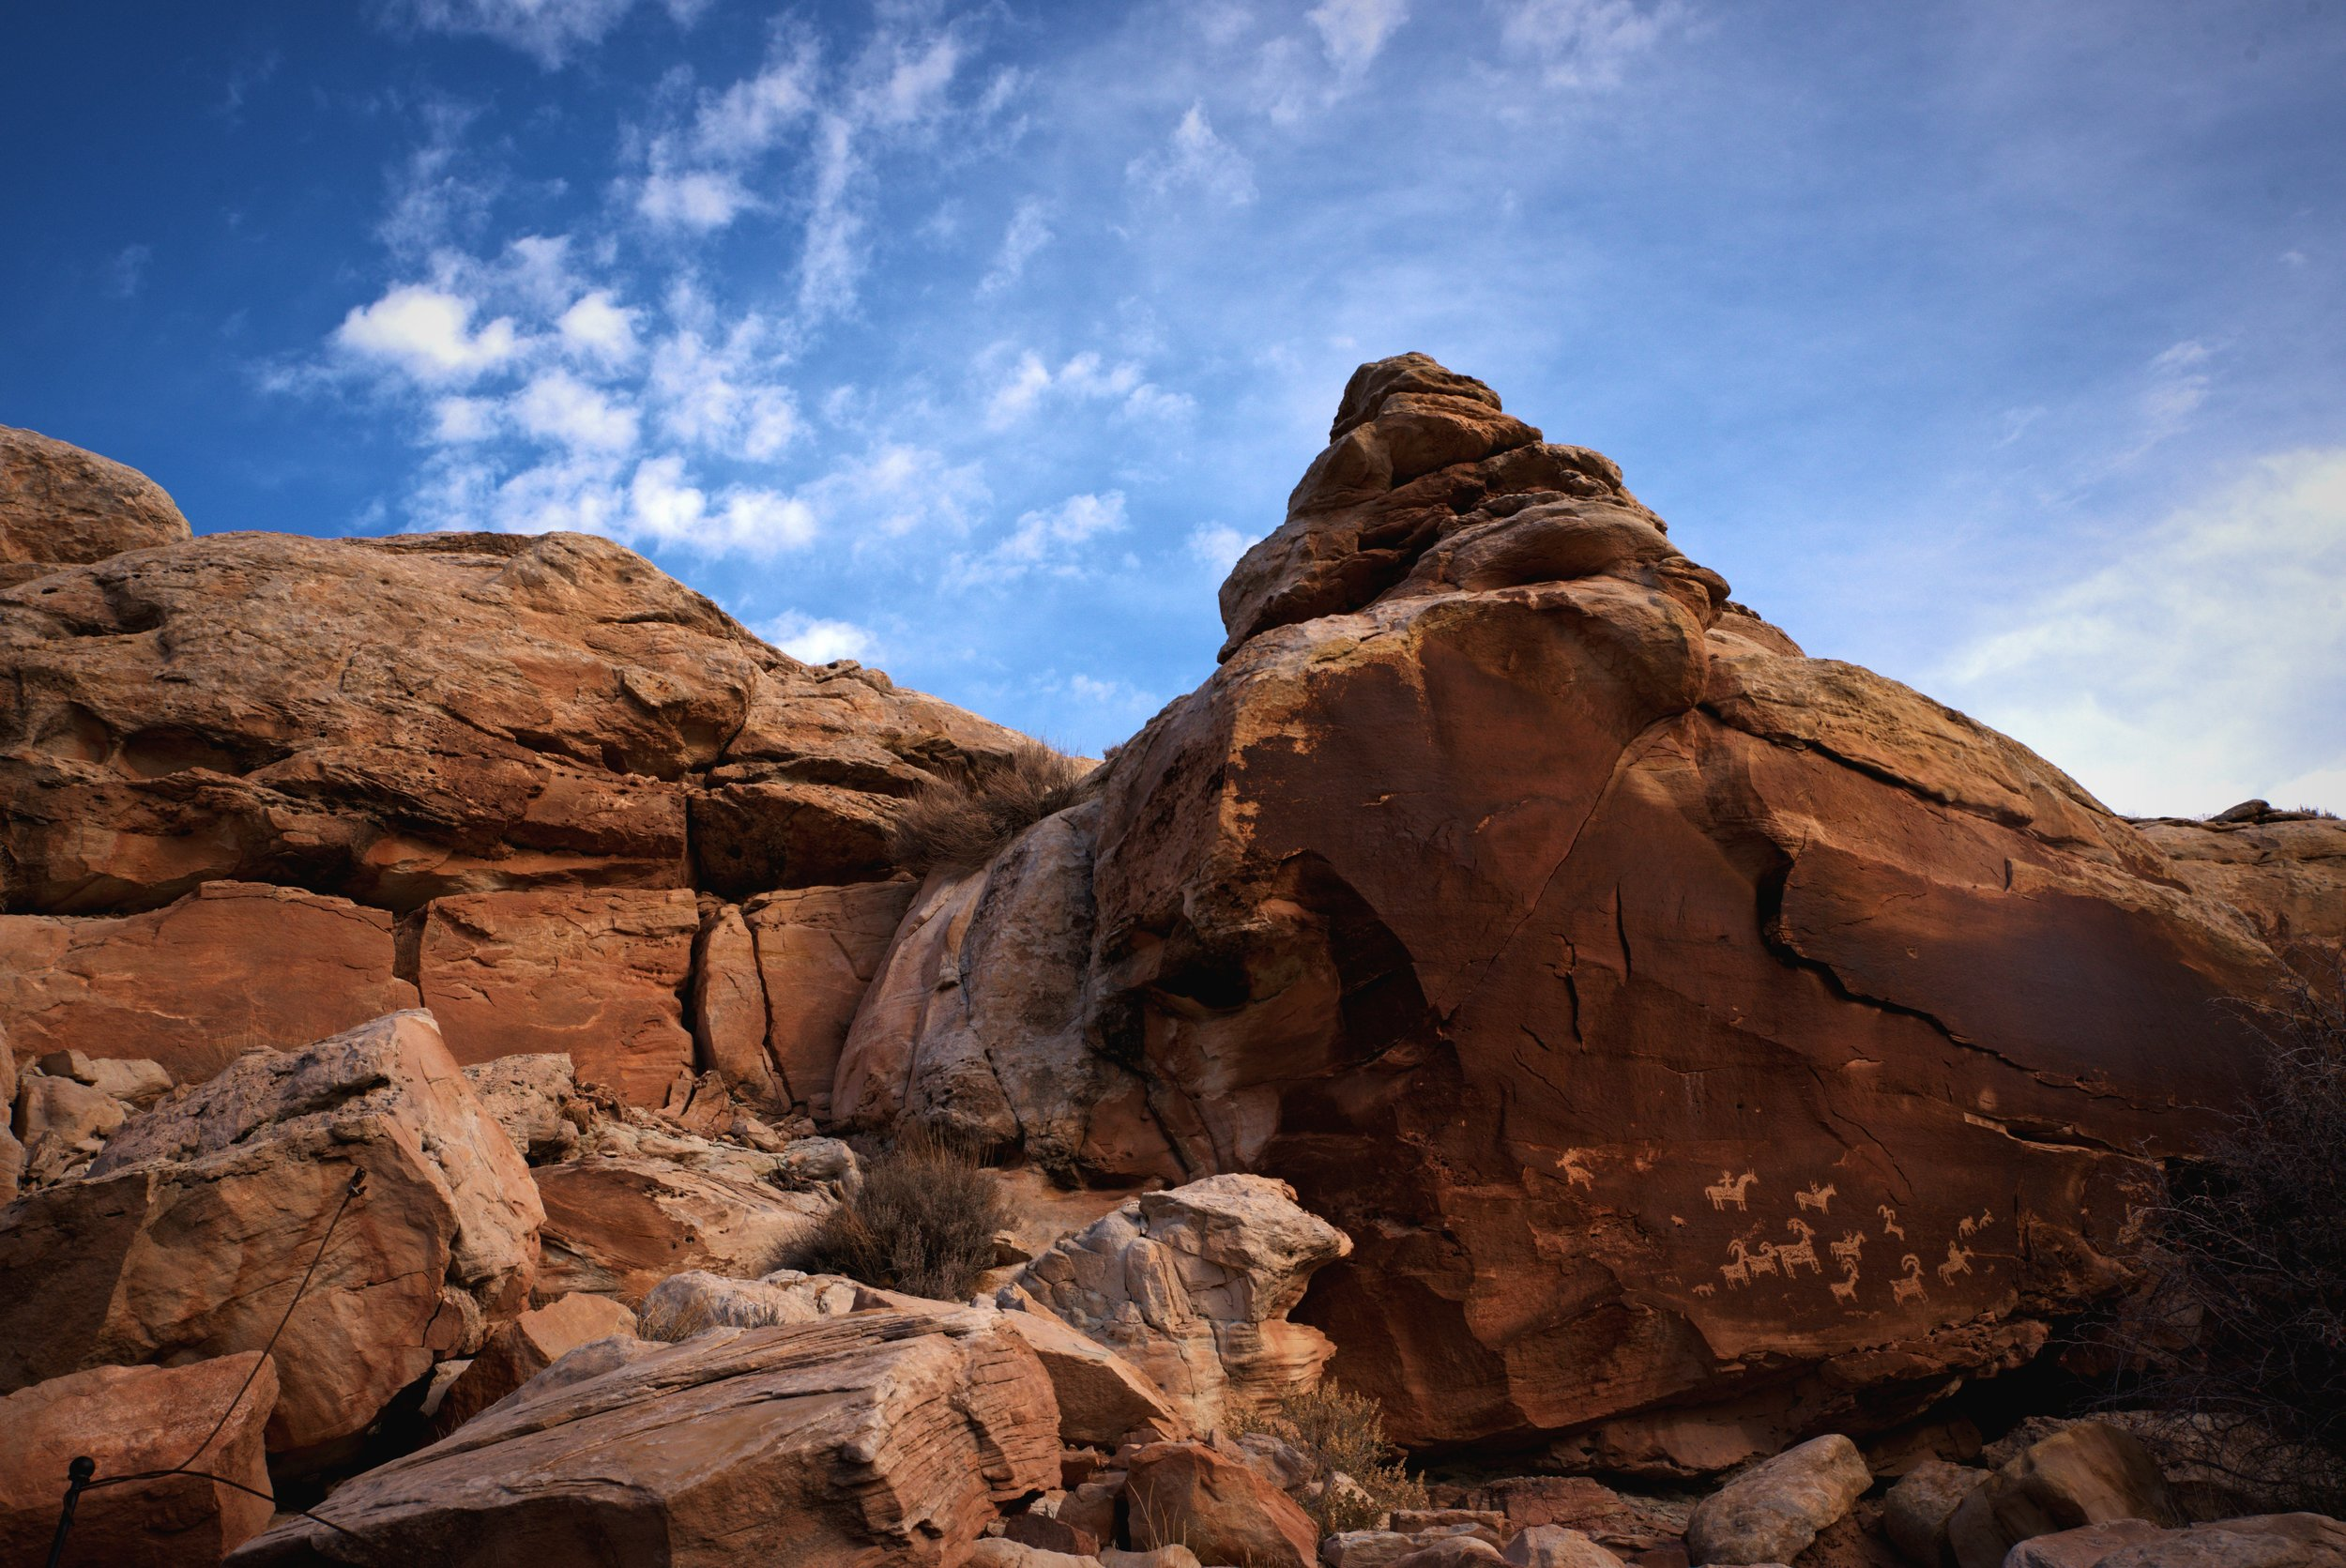 The Ute Rock Art along the Delicate Arch Trail is really beautiful.